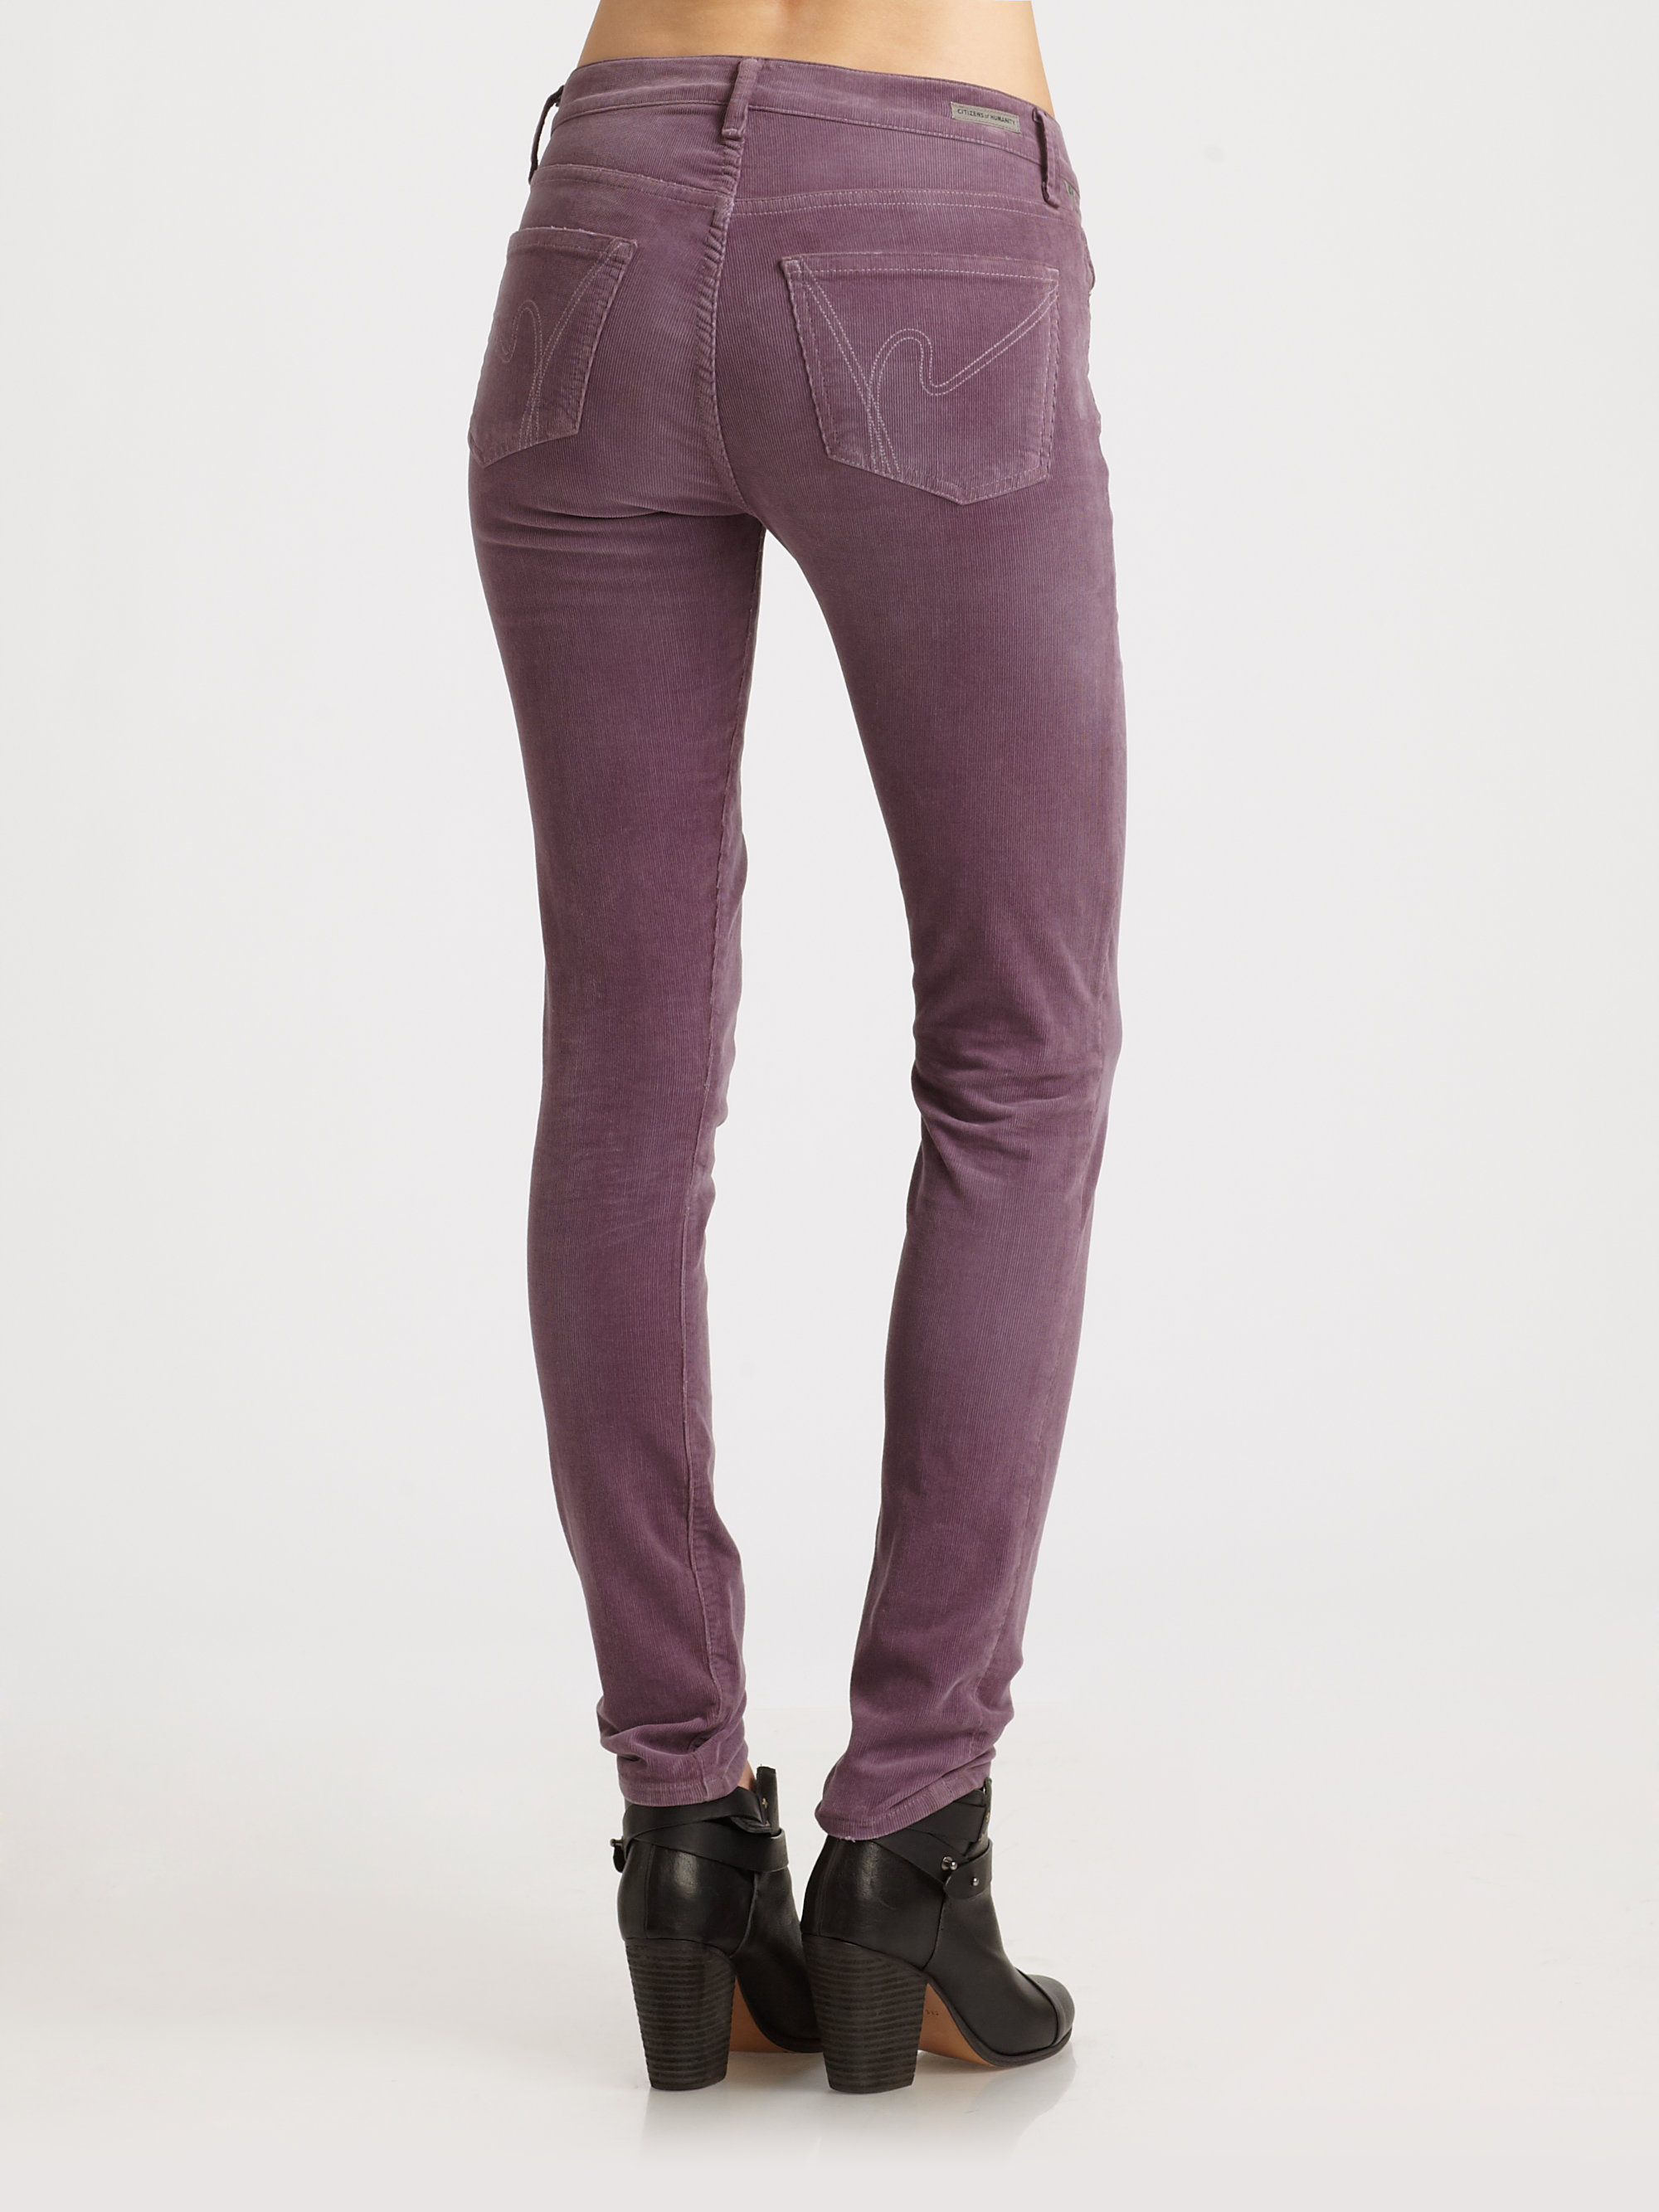 Citizens of humanity Luxury Corduroy Skinny Jeans in Purple  Lyst